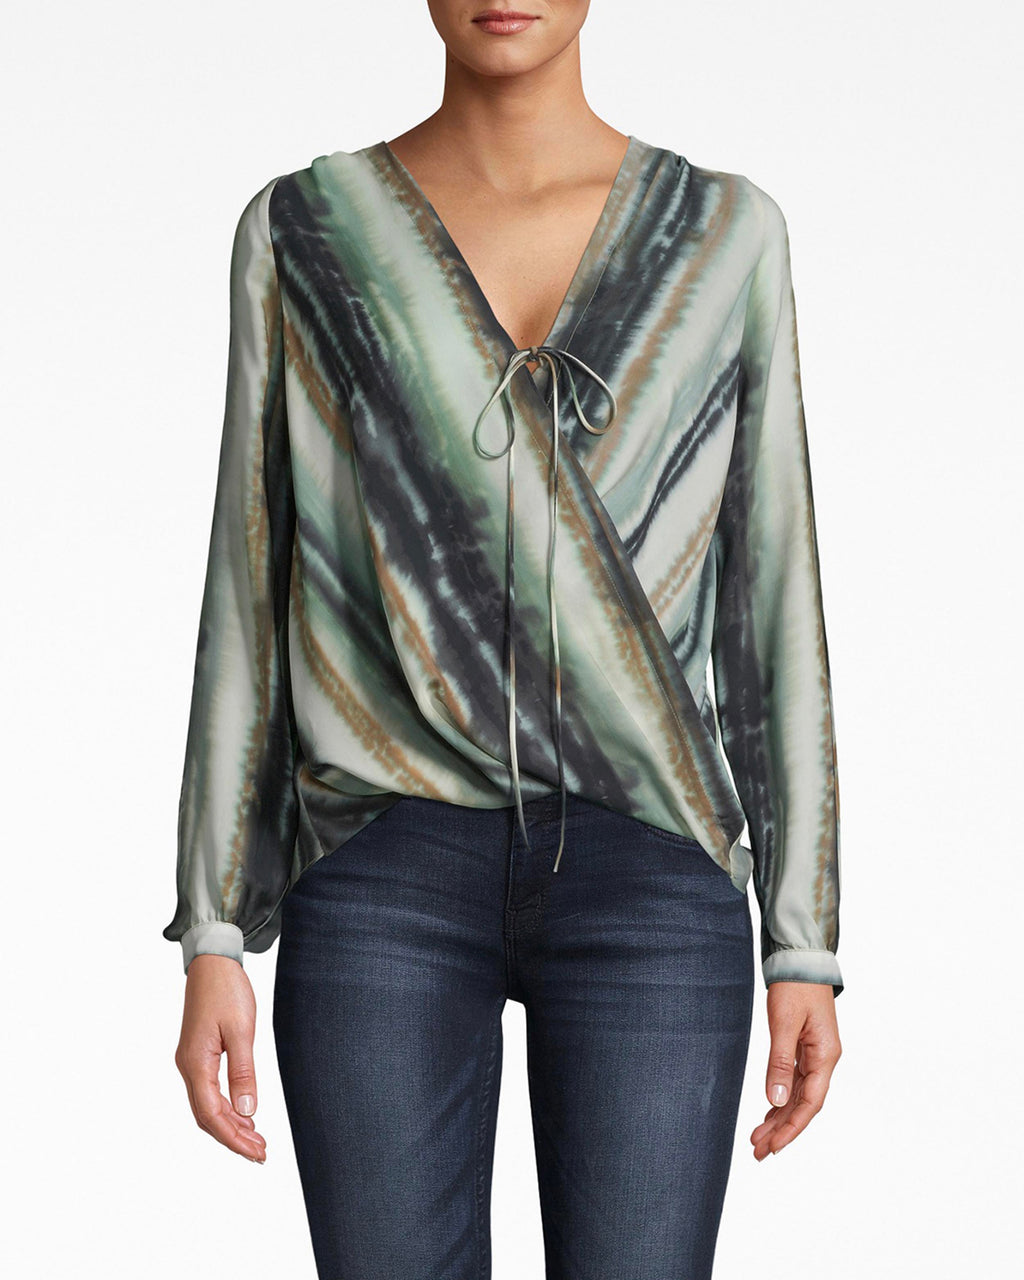 BD10279 - INK STRIPE SILK DRAPED LONG SLEEVE BLOUSE - tops - blouses - Drape and go. This silk long sleeve blouse features flowing sleeves and a front bow. The fabric wrapping adds a dynamic shape. Pair back with denim or black jeans.